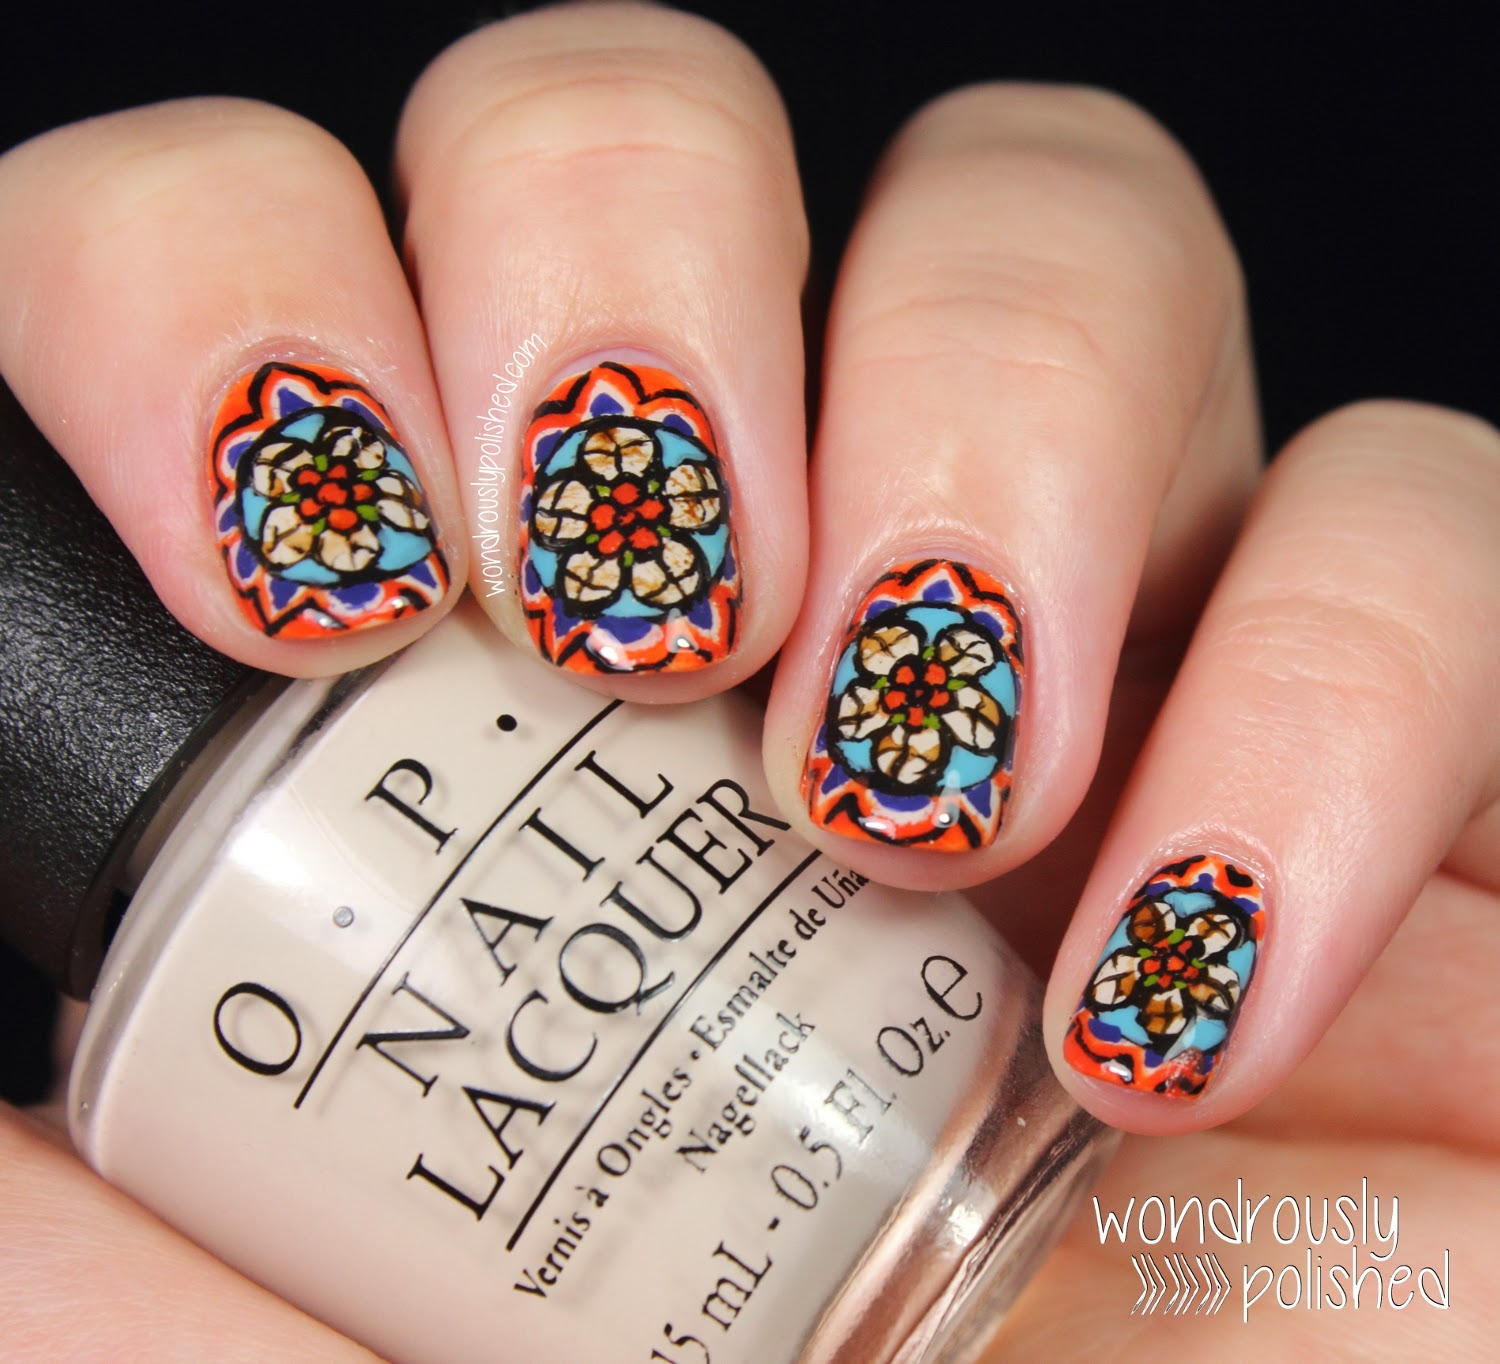 Wondrously Polished: 31 Day Nail Art Challenge - Day 25: Inspired by ...